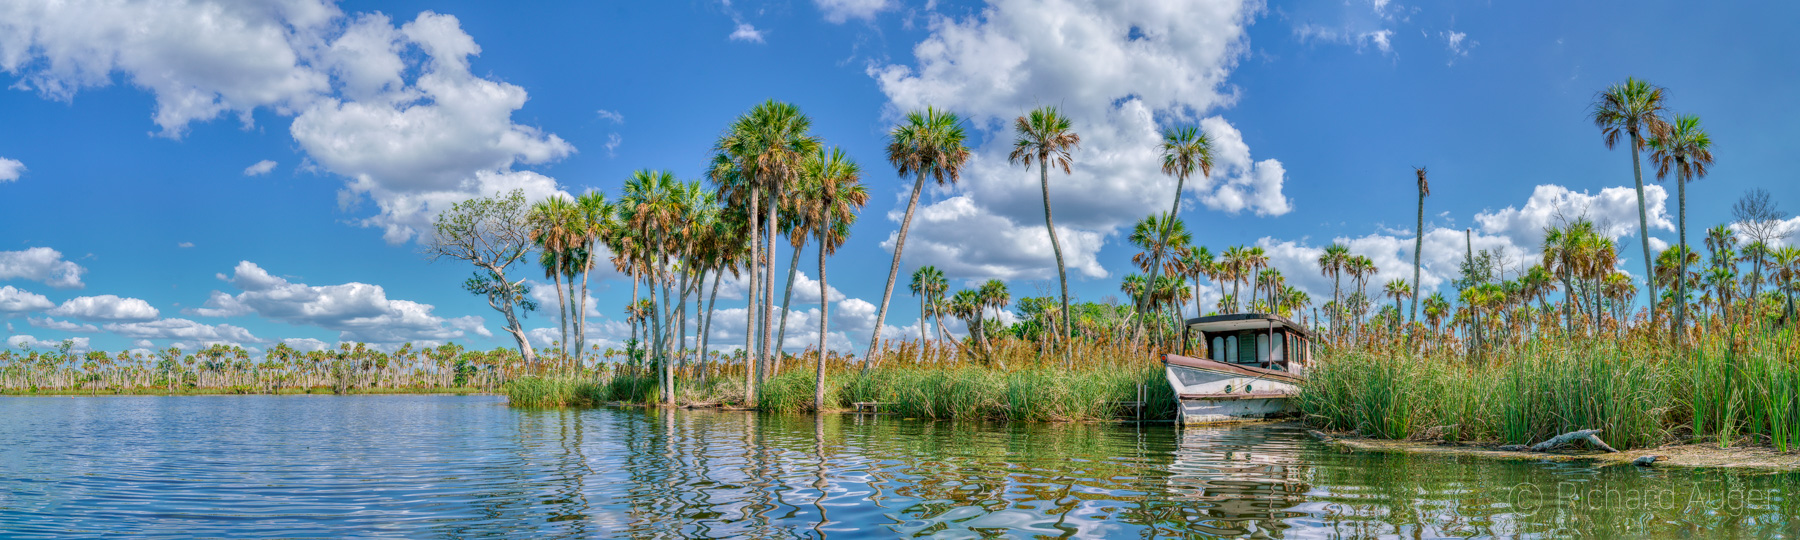 Chassahowitzka River, Bay, Florida, Boat, Palm Trees, Landscape, Photograph, Swamp